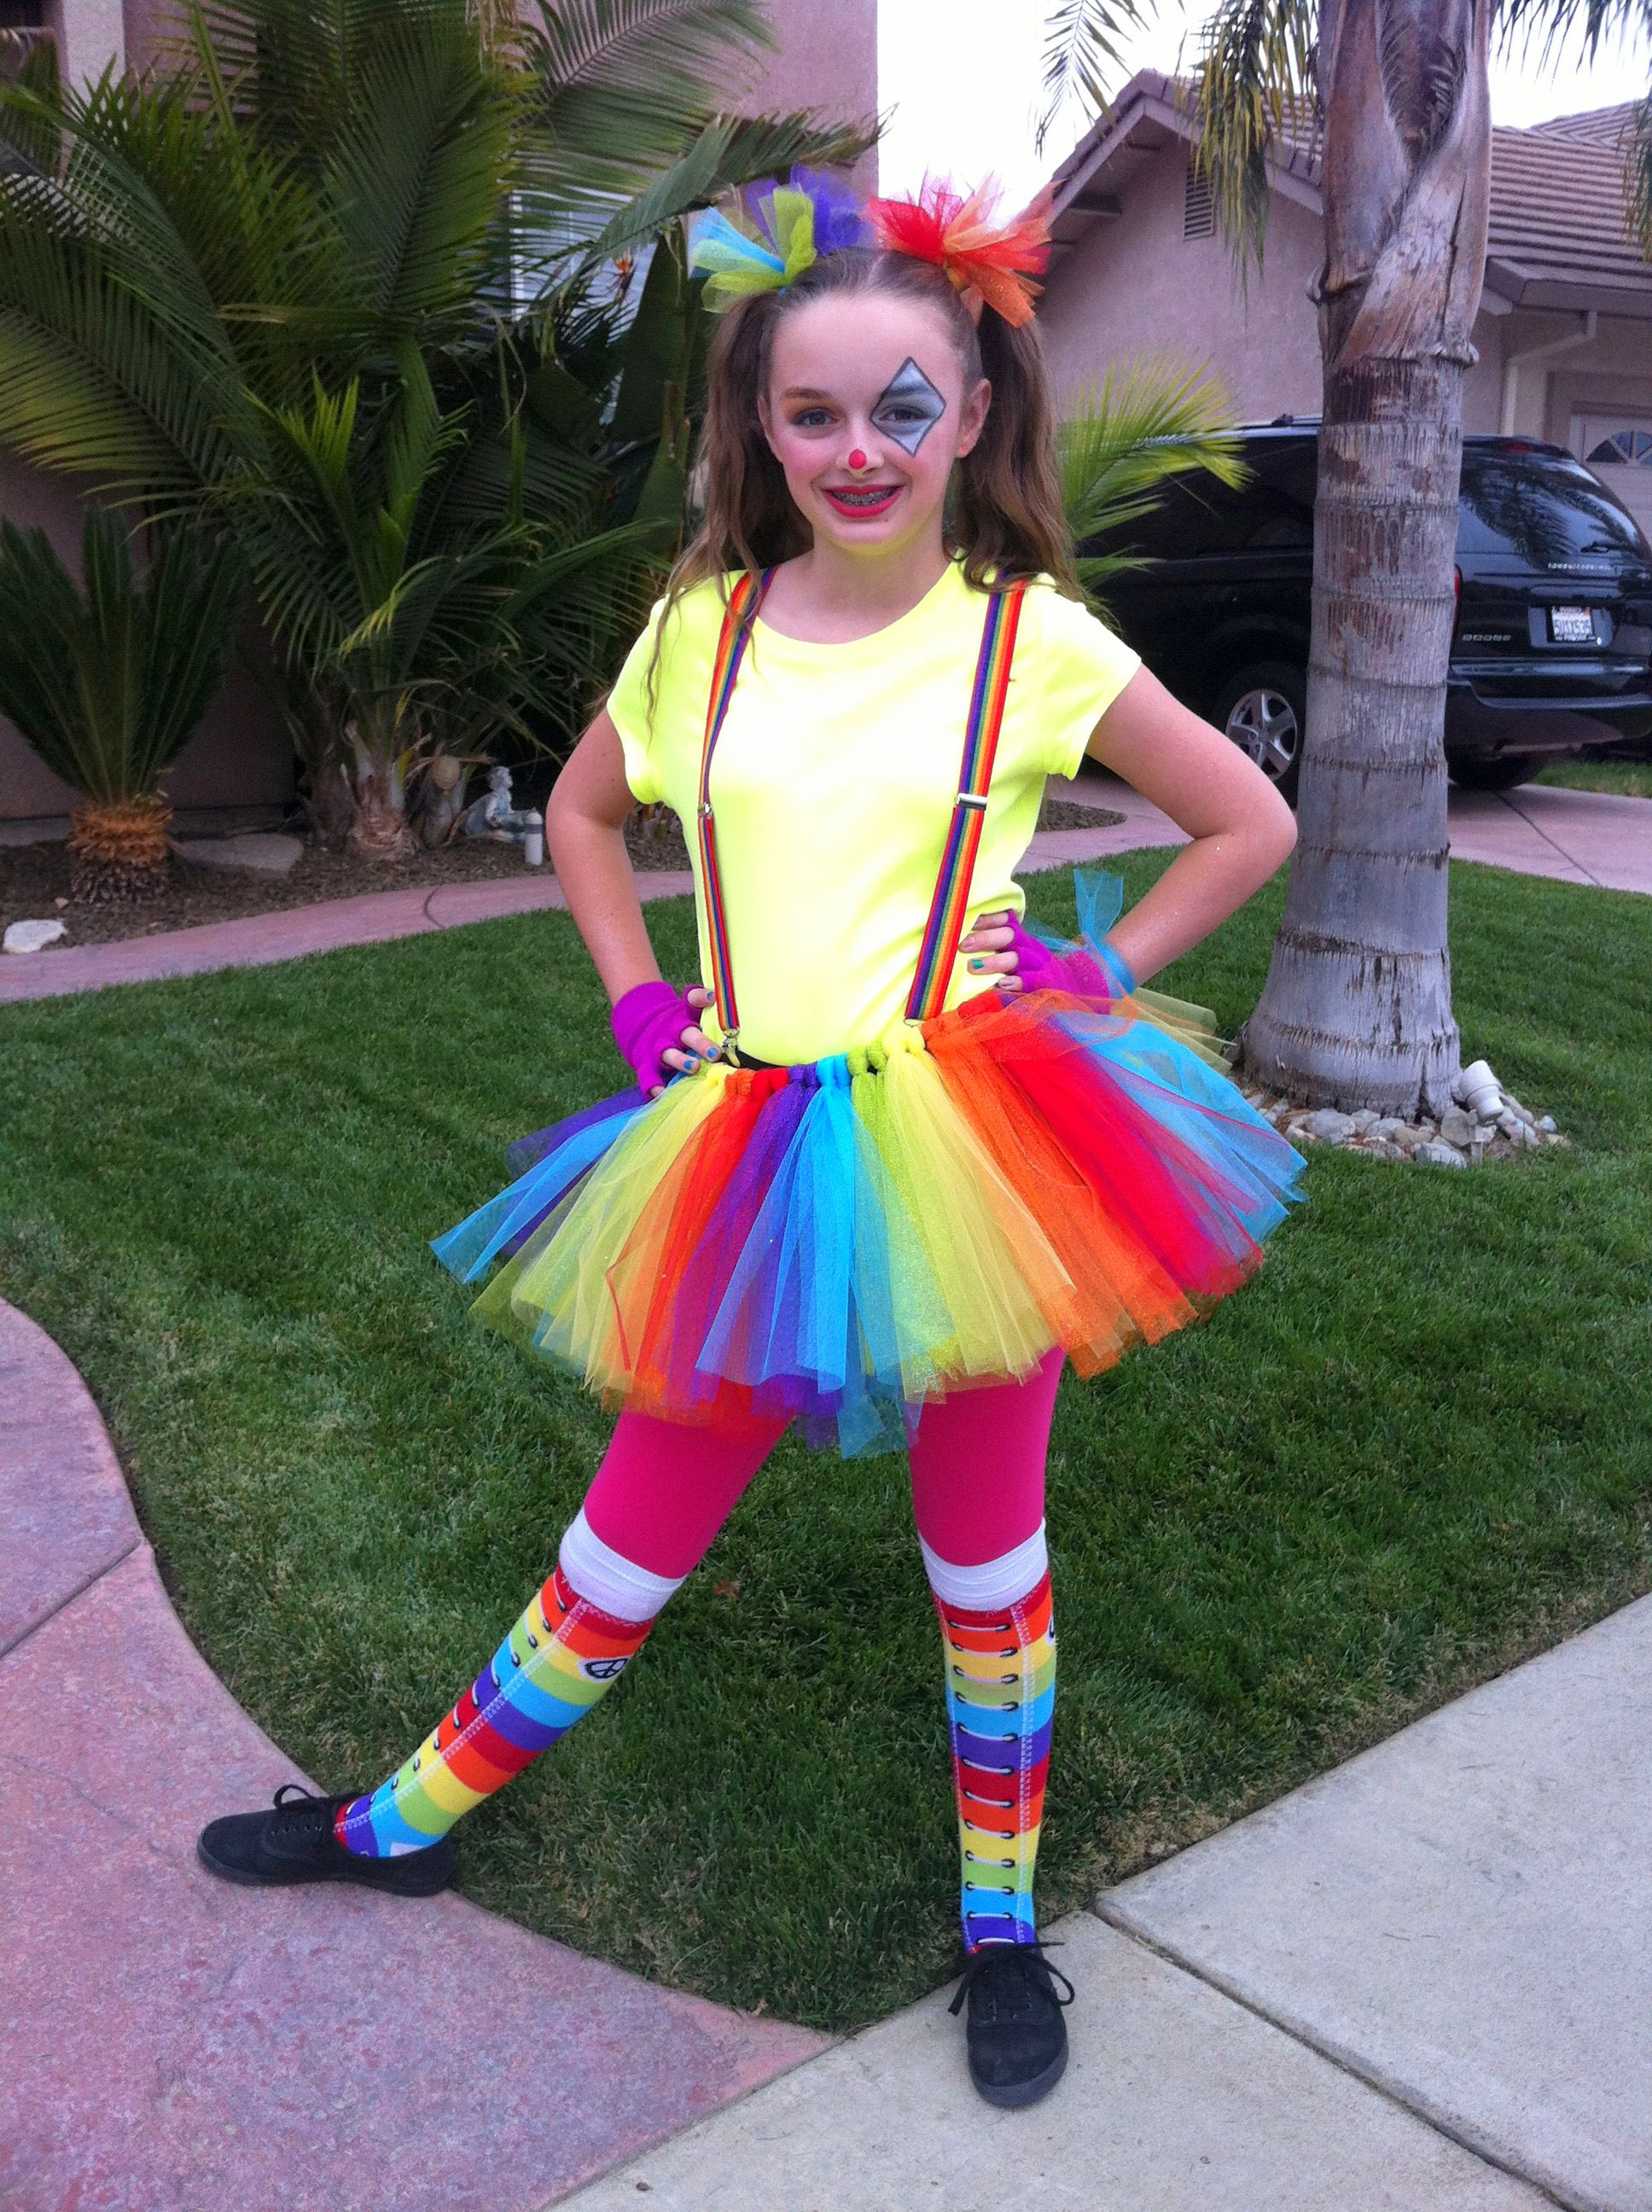 Einfache Kostüme Quotcute Clown Quot Easy Costume And Simple Makeup Inspired By A